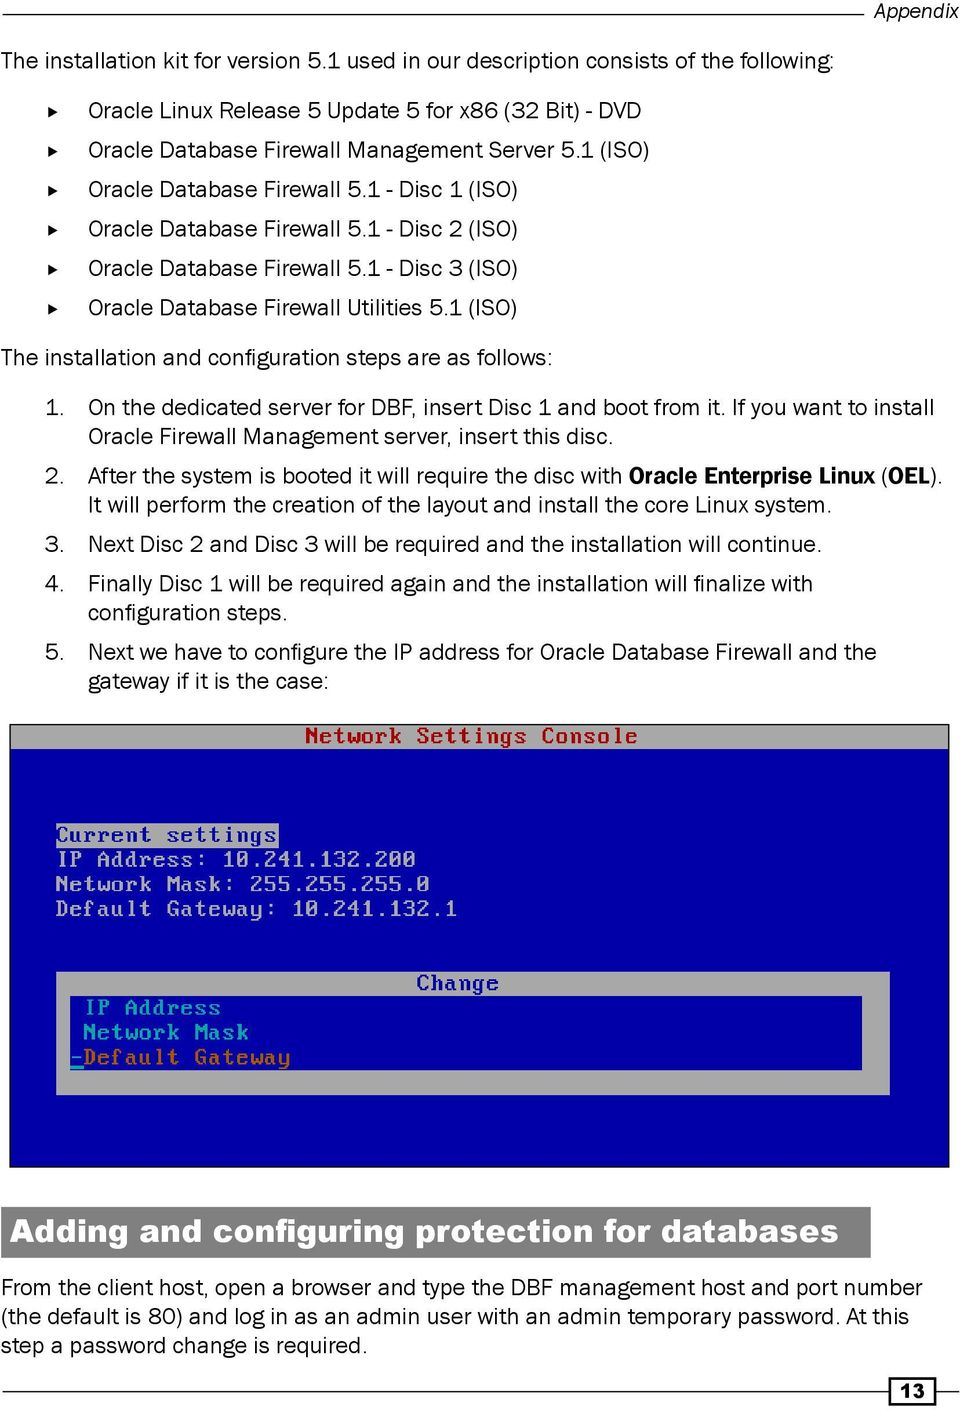 1 (ISO) Oracle Database Firewall 5.1 - Disc 1 (ISO) Oracle Database Firewall 5.1 - Disc 2 (ISO) Oracle Database Firewall 5.1 - Disc 3 (ISO) Oracle Database Firewall Utilities 5.